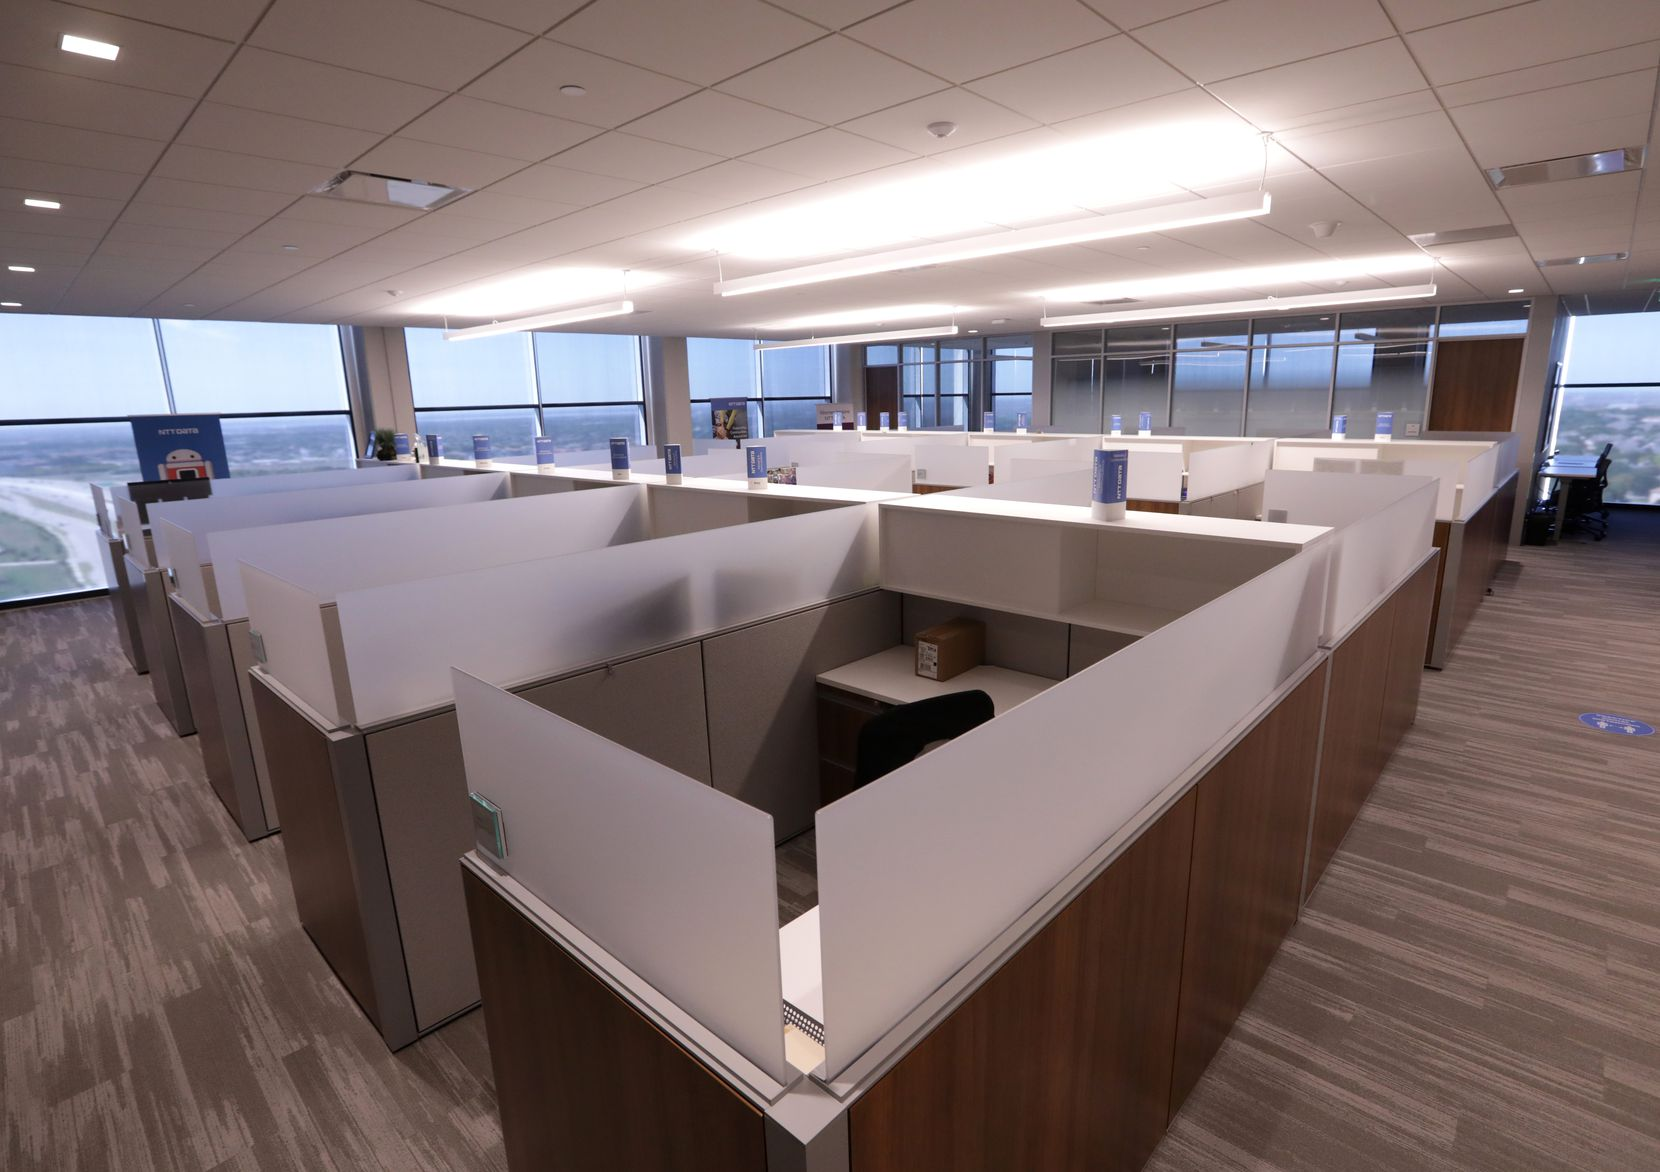 After the COVID-19 outbreak last winter, NTT Data Services moved nearly all its global workforce out of the office. By mid-October, the headquarters in Plano was still empty.